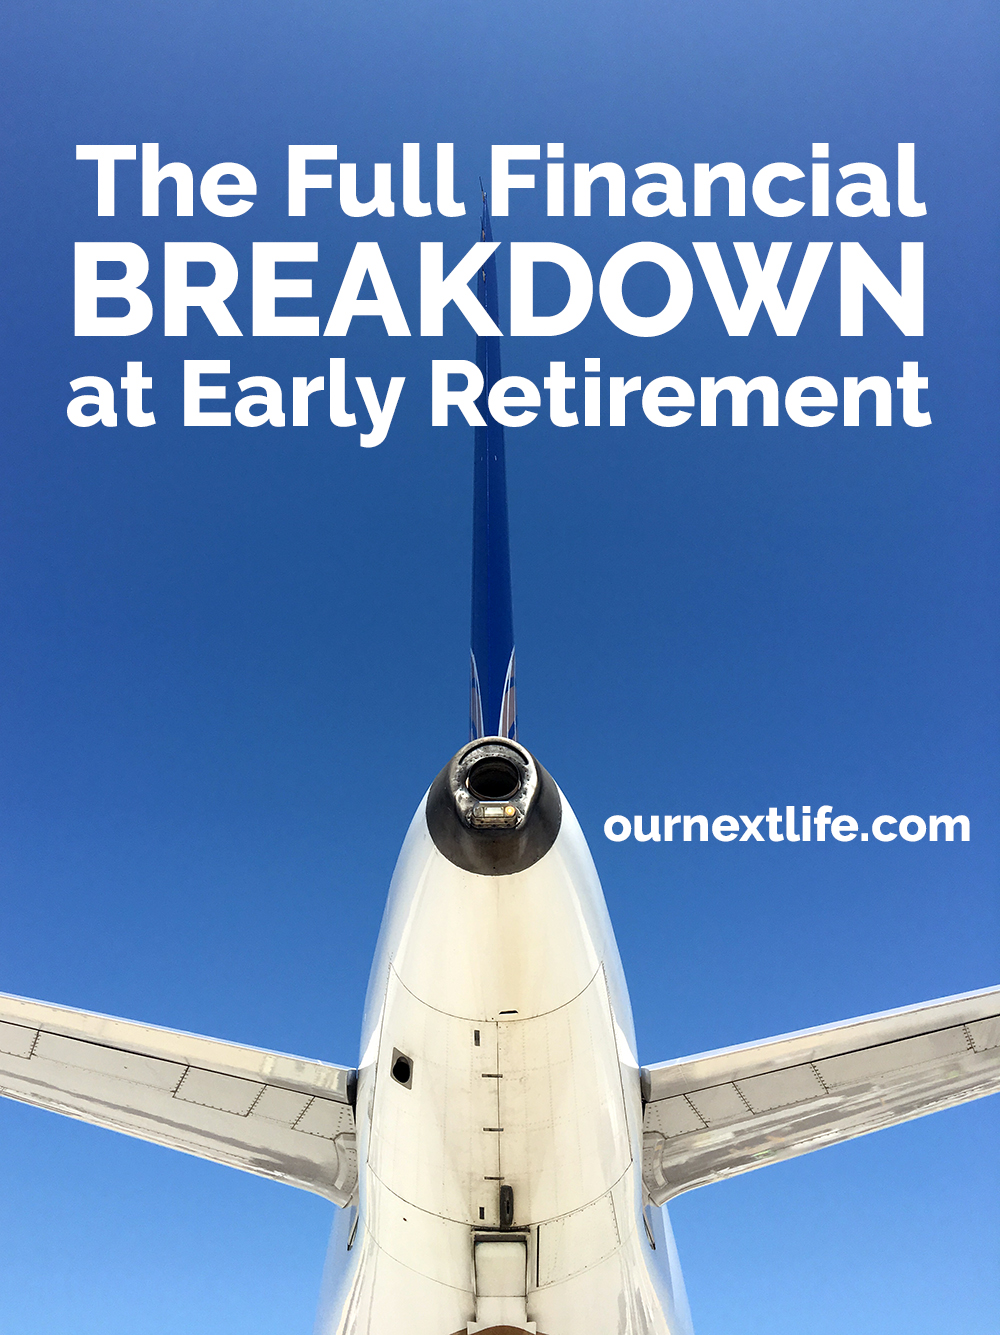 Our Next Life early retirement full financial breakdown // assets and liabilities at the time of our early retirement at age 38 and 41